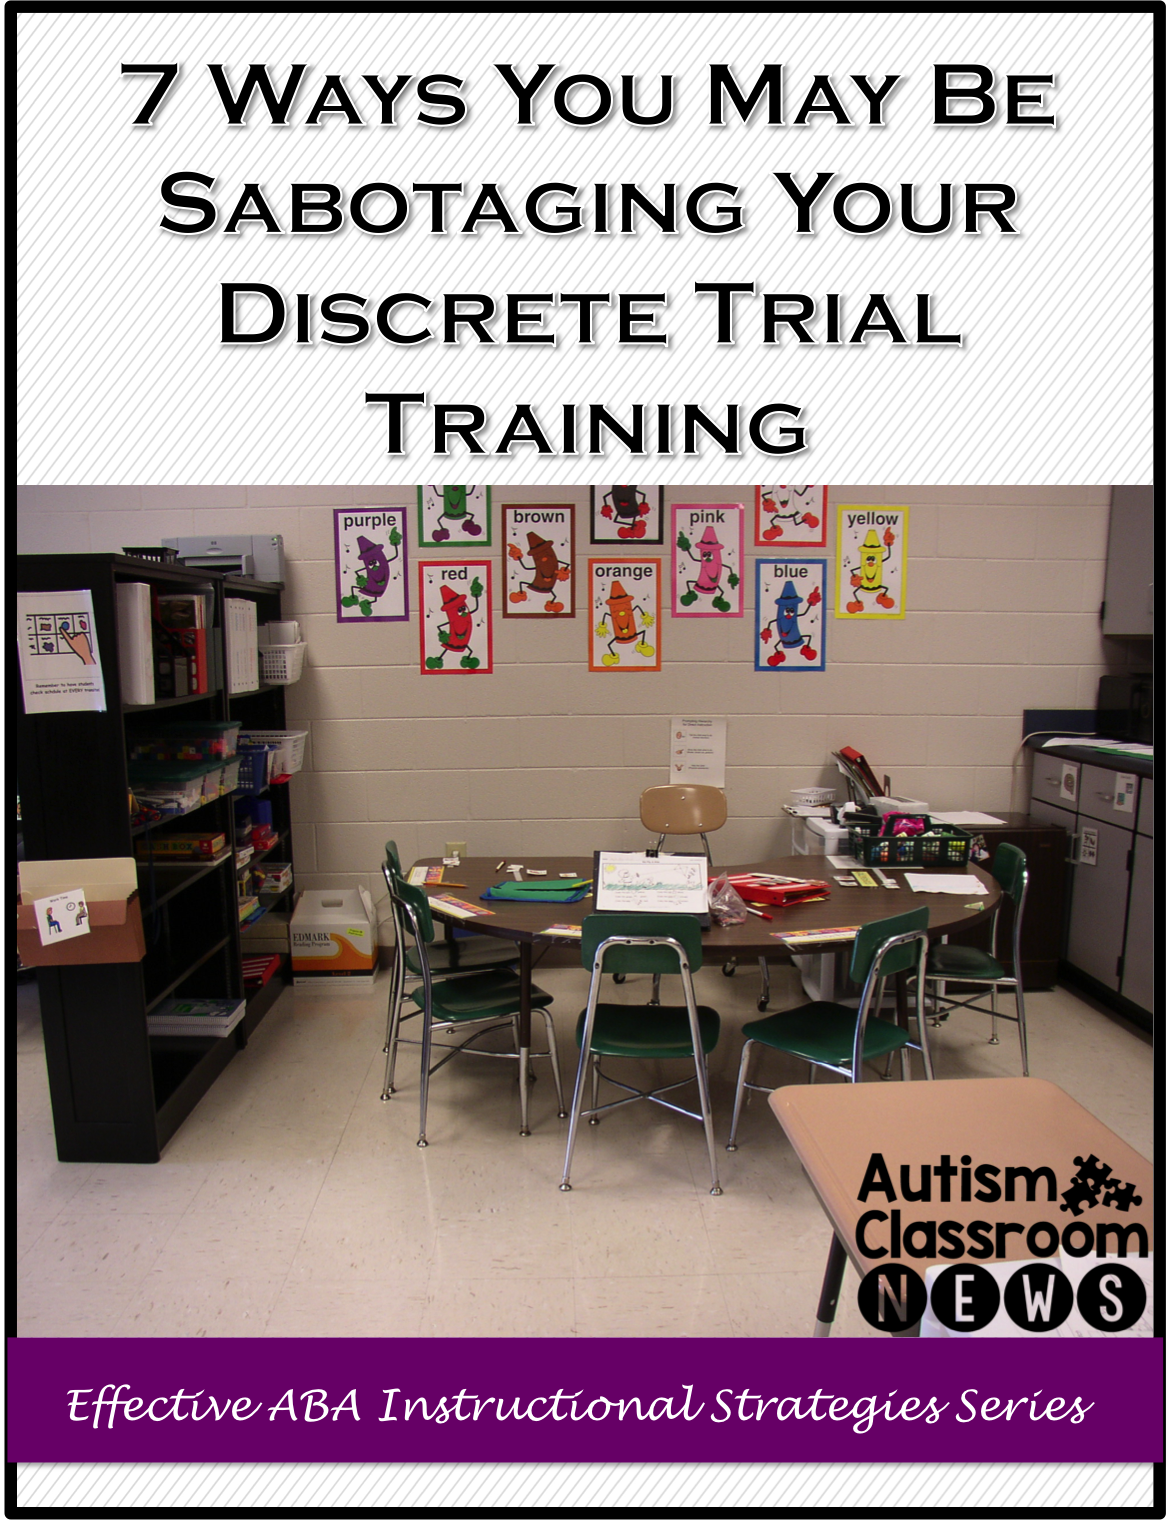 7 Ways You Could Be Sabotaging Your Discrete Trial